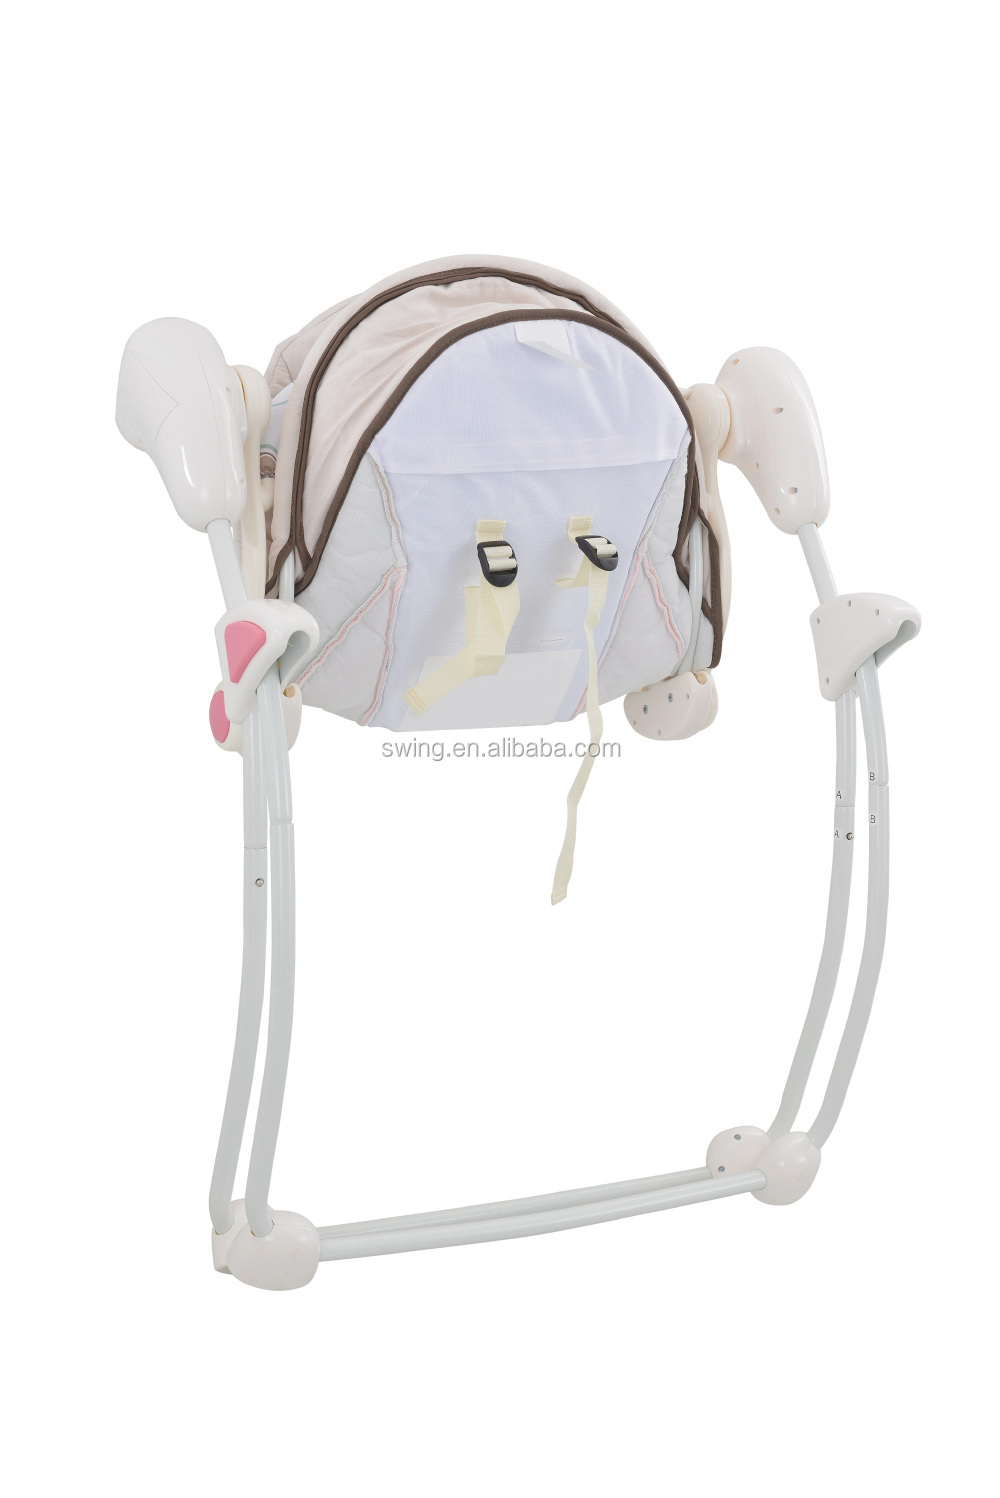 Electric baby swing/portable baby swing